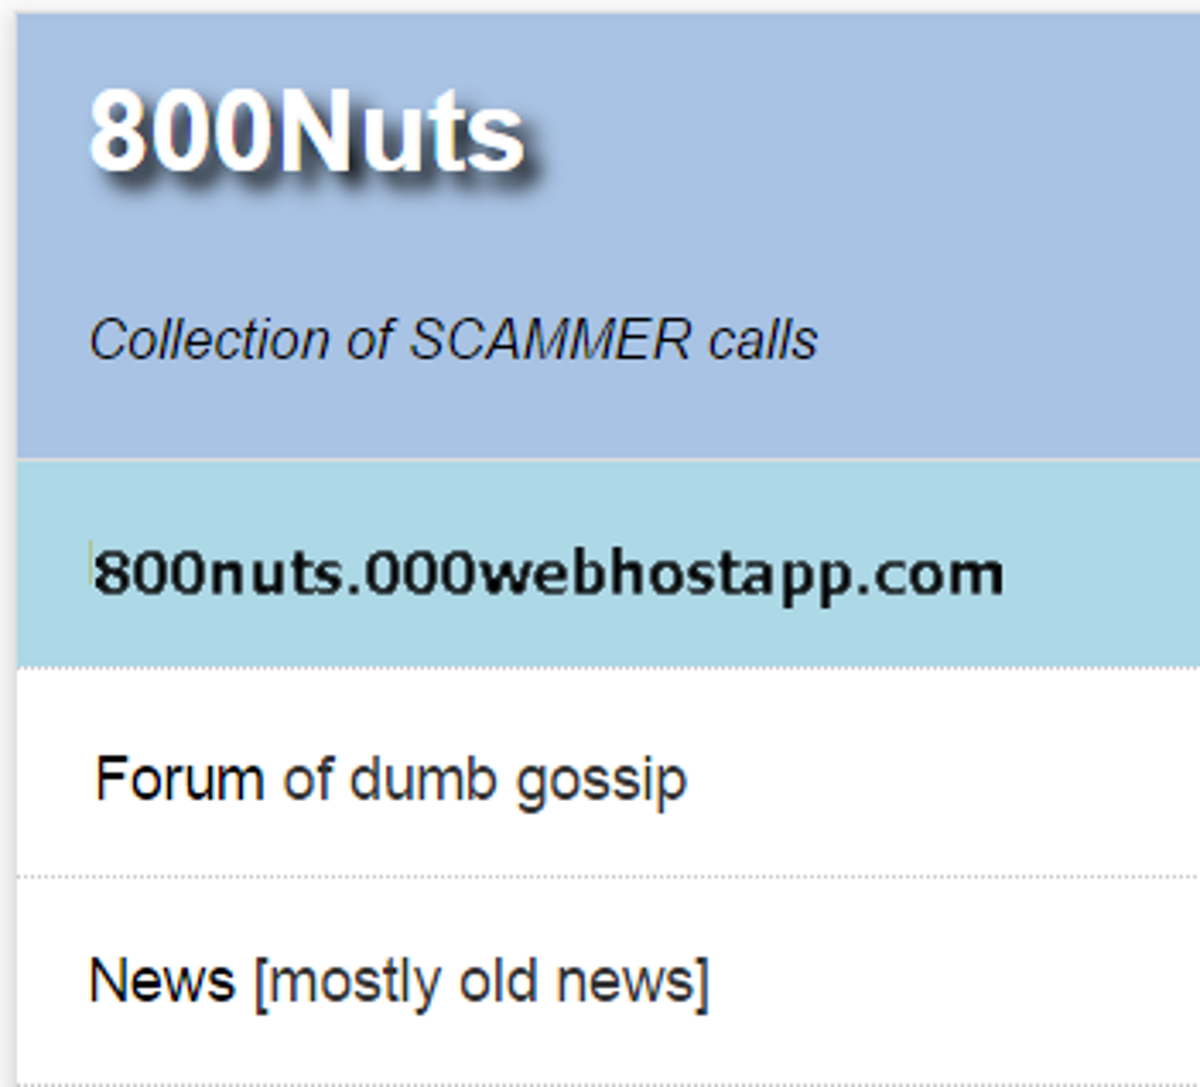 Complaint-review: 800notes - Reverse Phony Directory